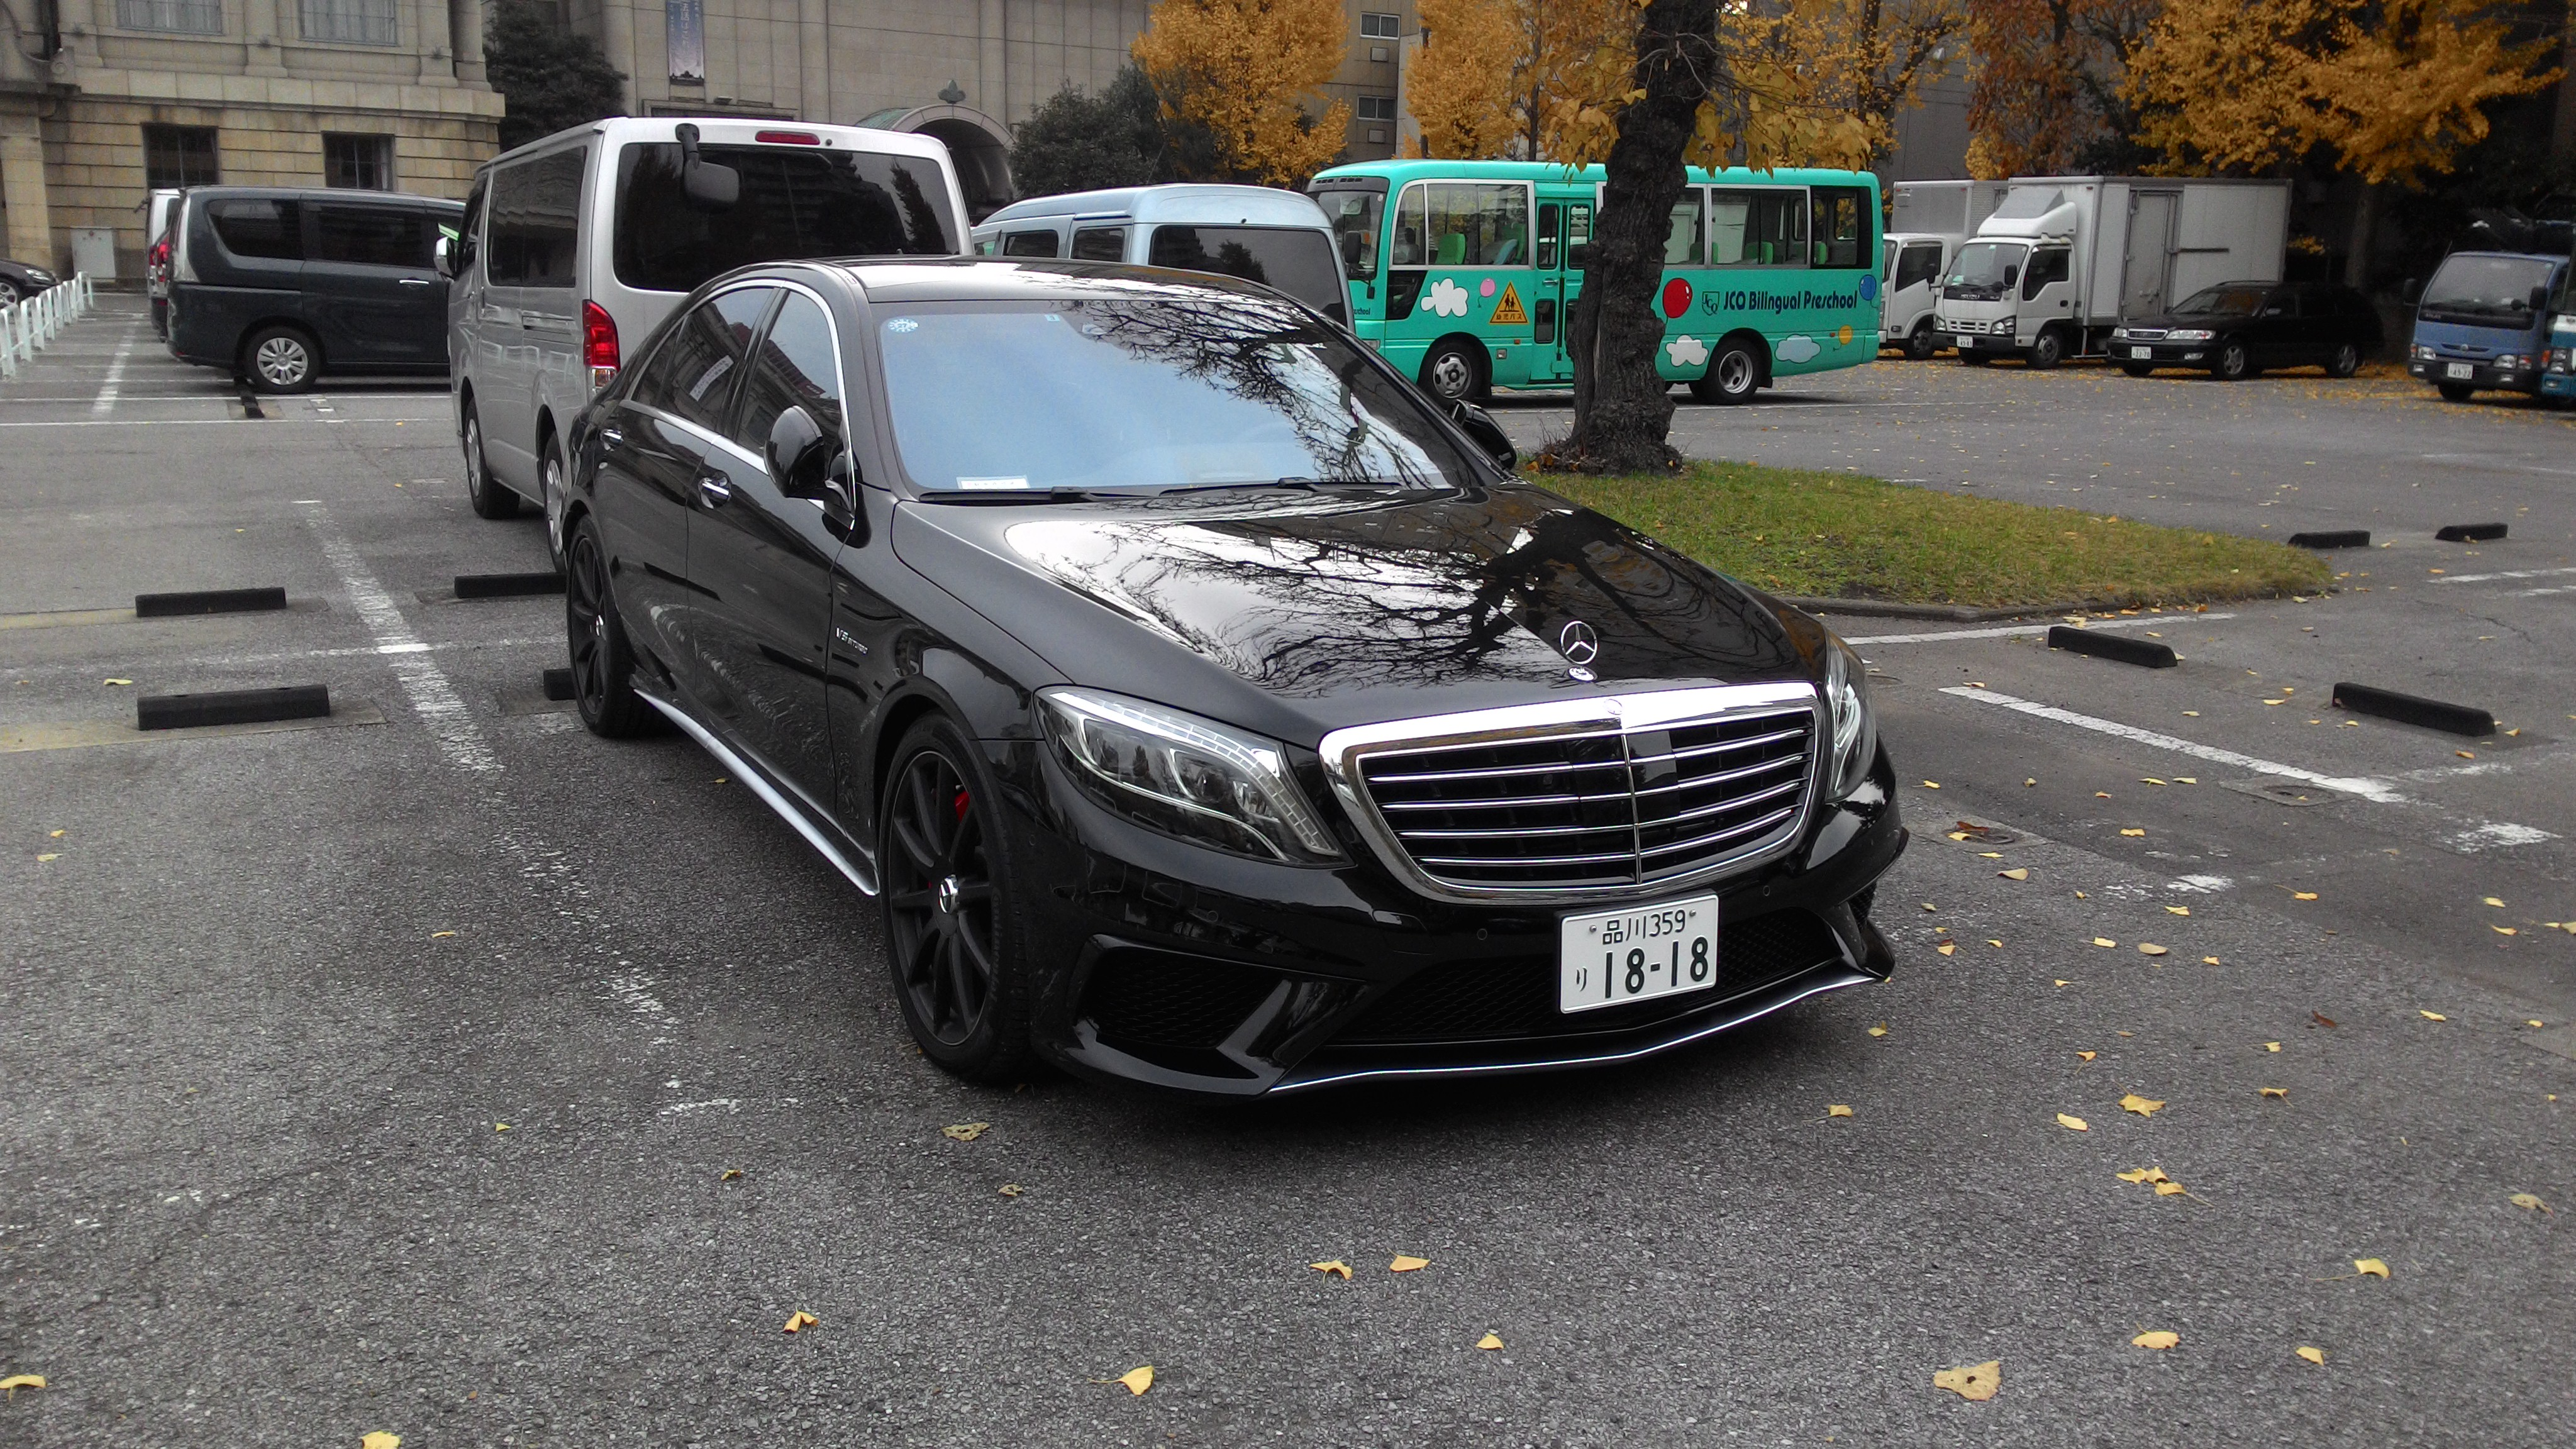 2014 mercedes benz s63 amg 4matic in tokyo japan for 2014 mercedes benz s63